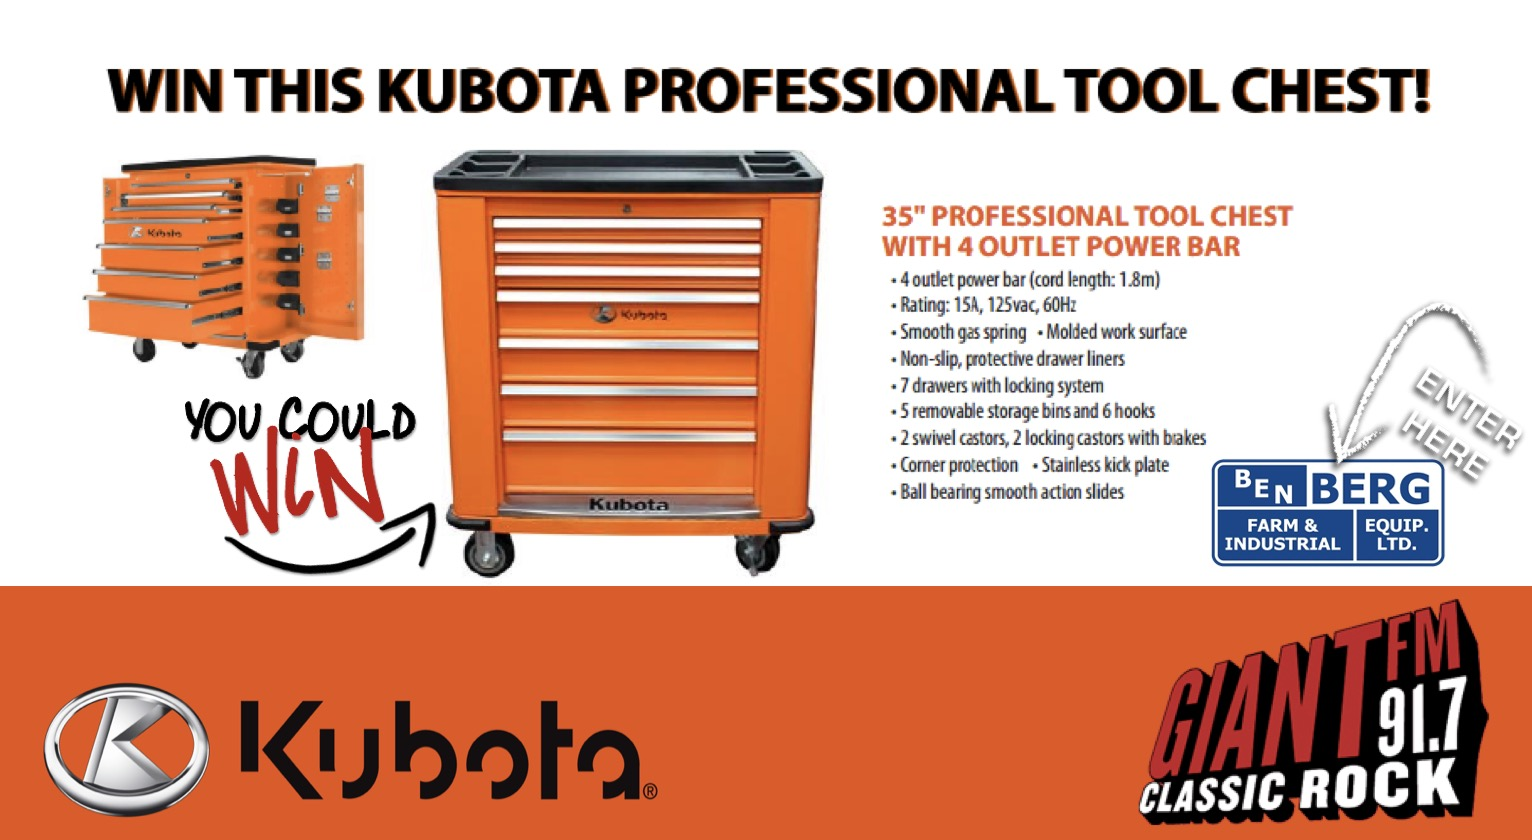 KUBOTA Tool Box Giveaway this Saturday at Ben Berg!